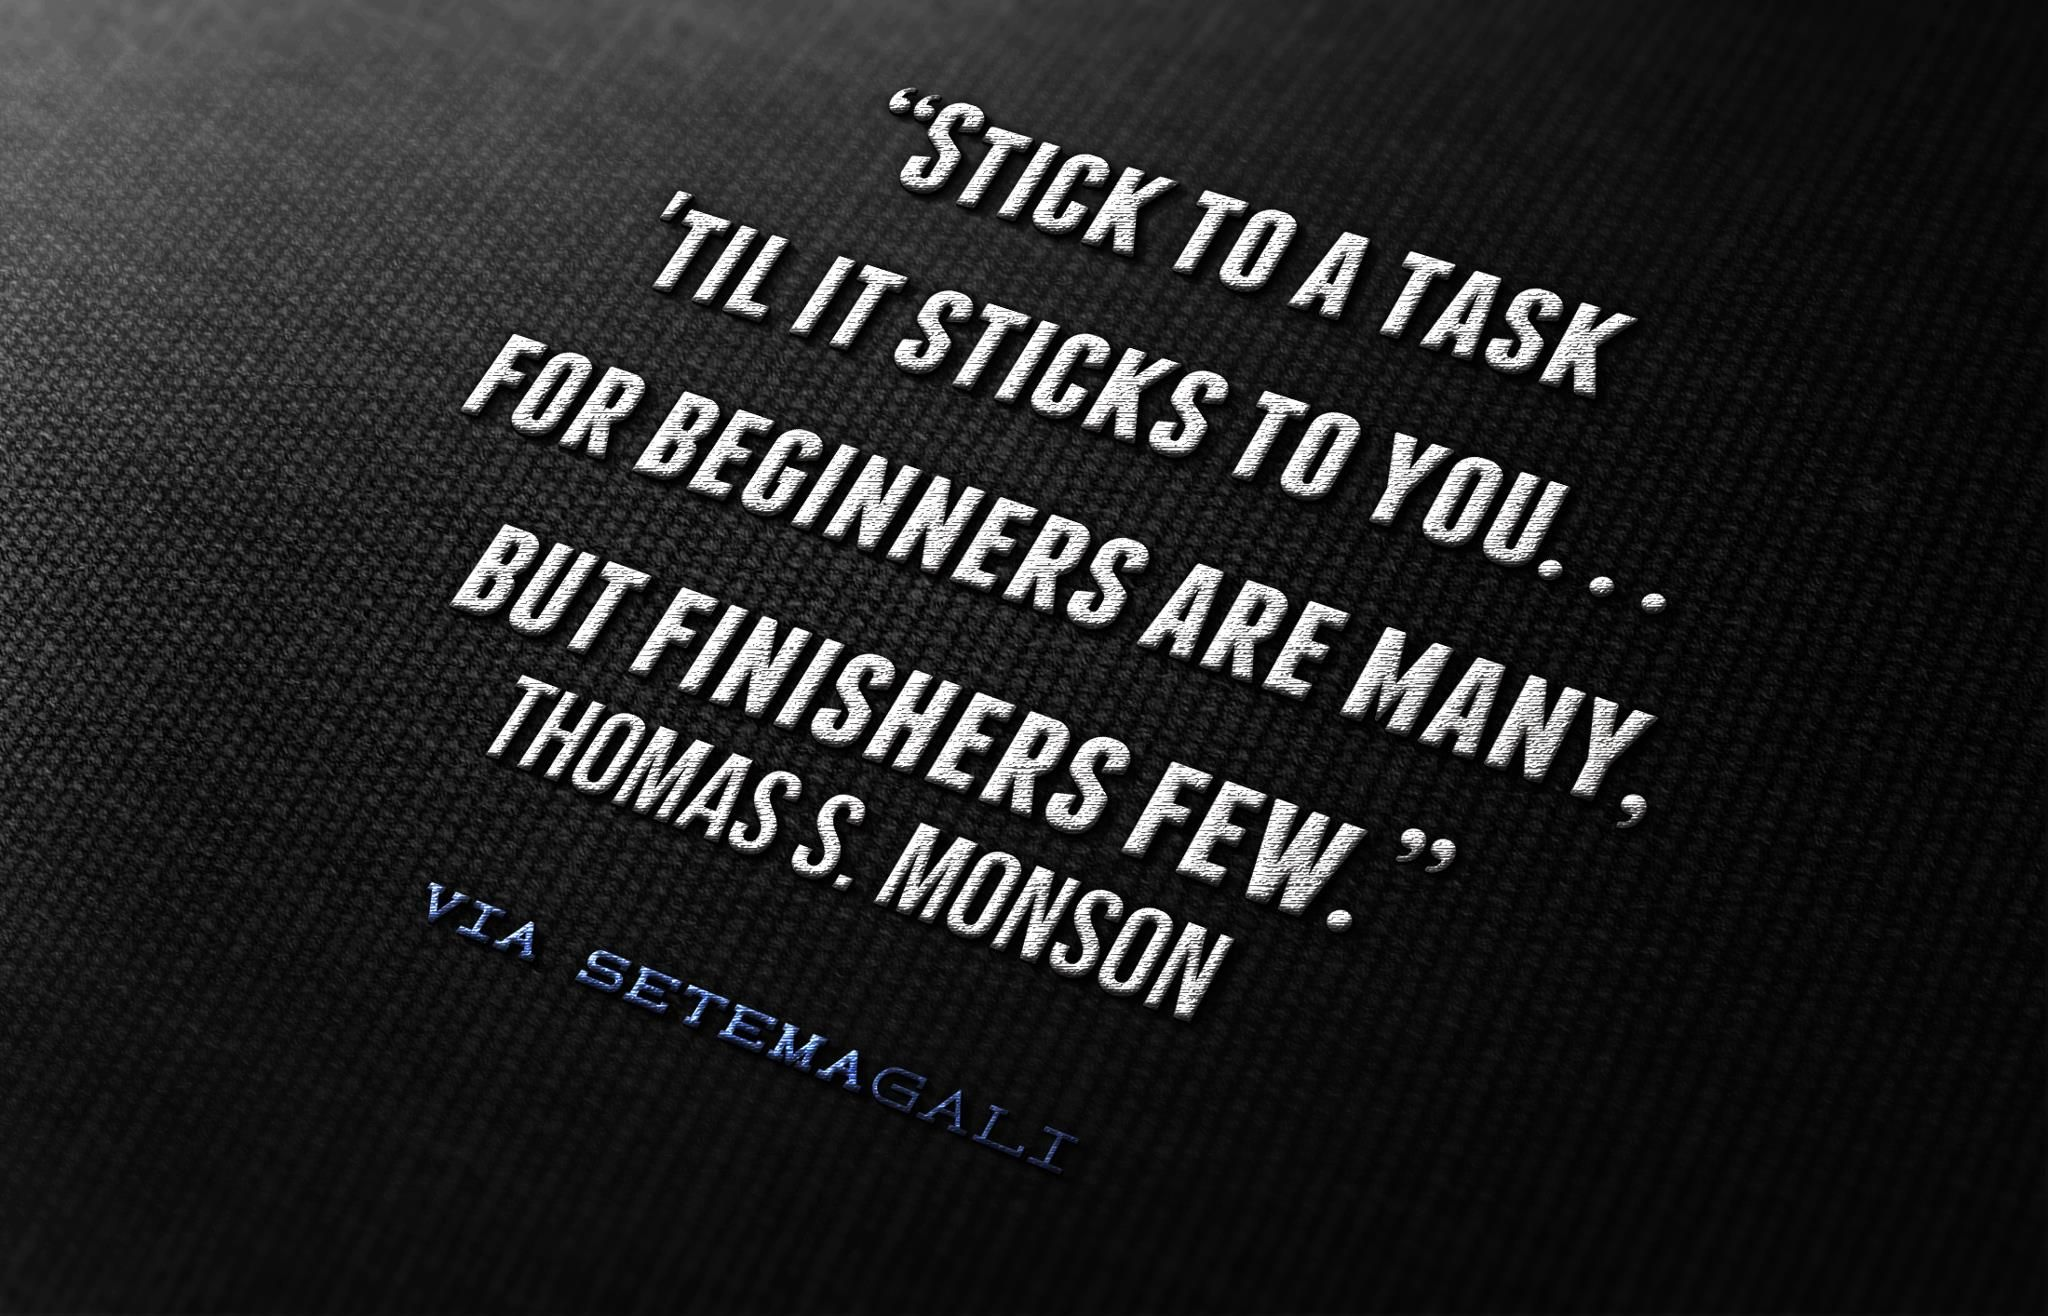 """""""Stick to a task 'til it sticks to you... for beginners are many, but finishers are few."""" -President Monson"""